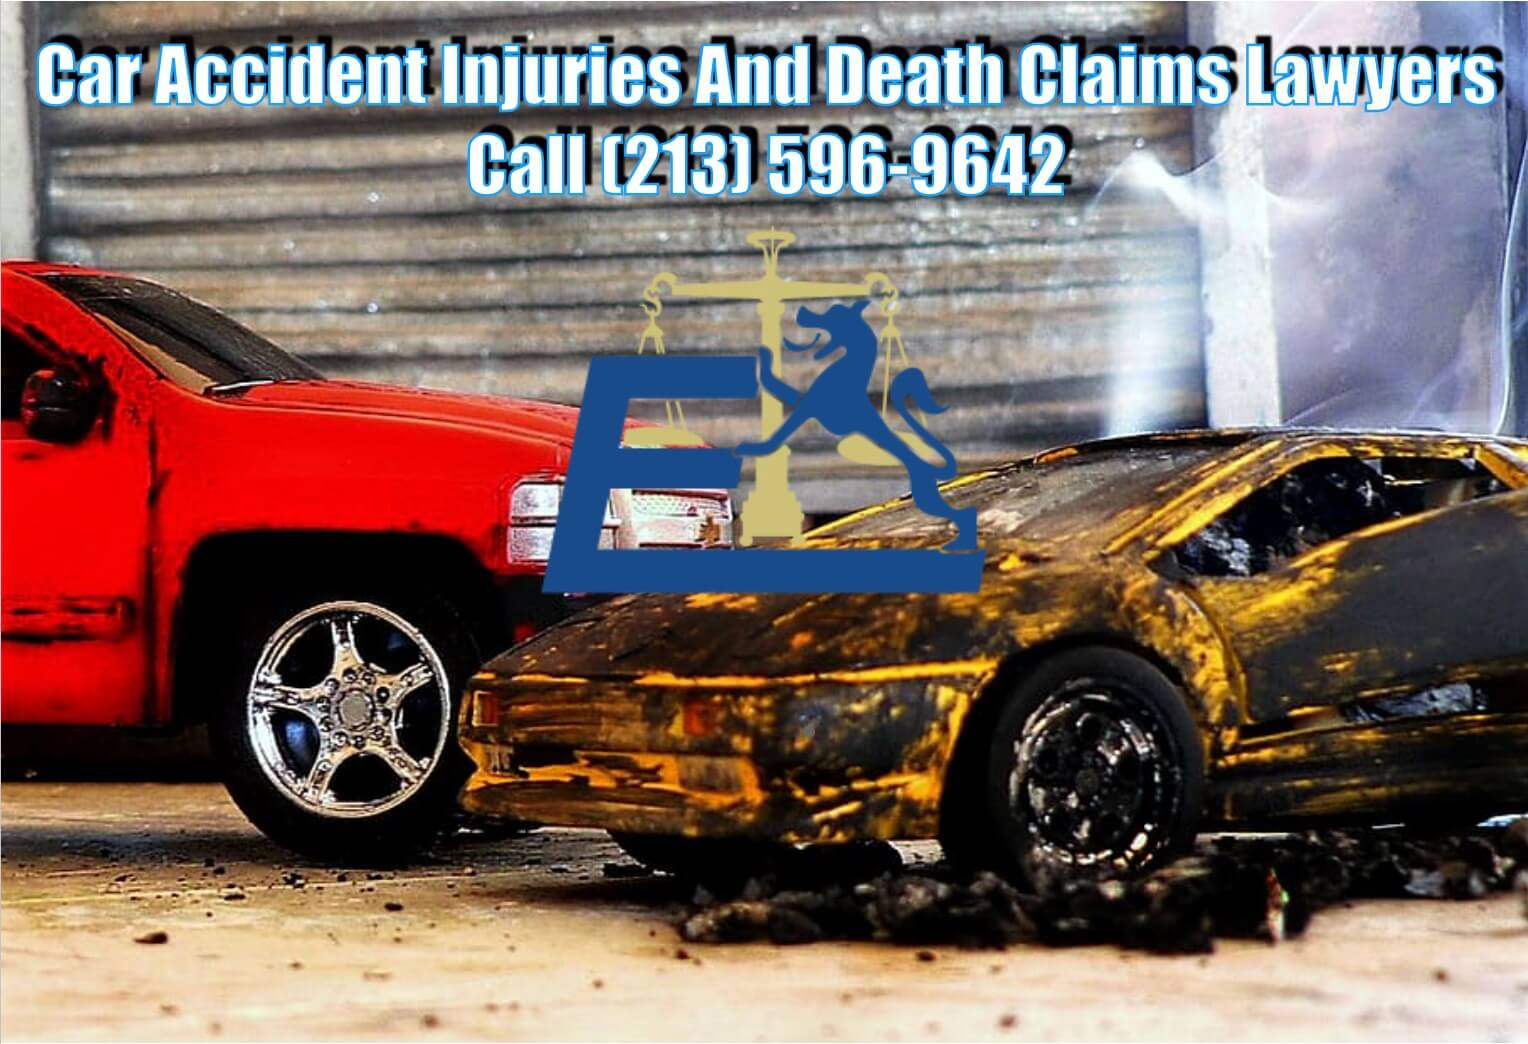 Injured or did someone die in a crash? Contact Ehline law now.